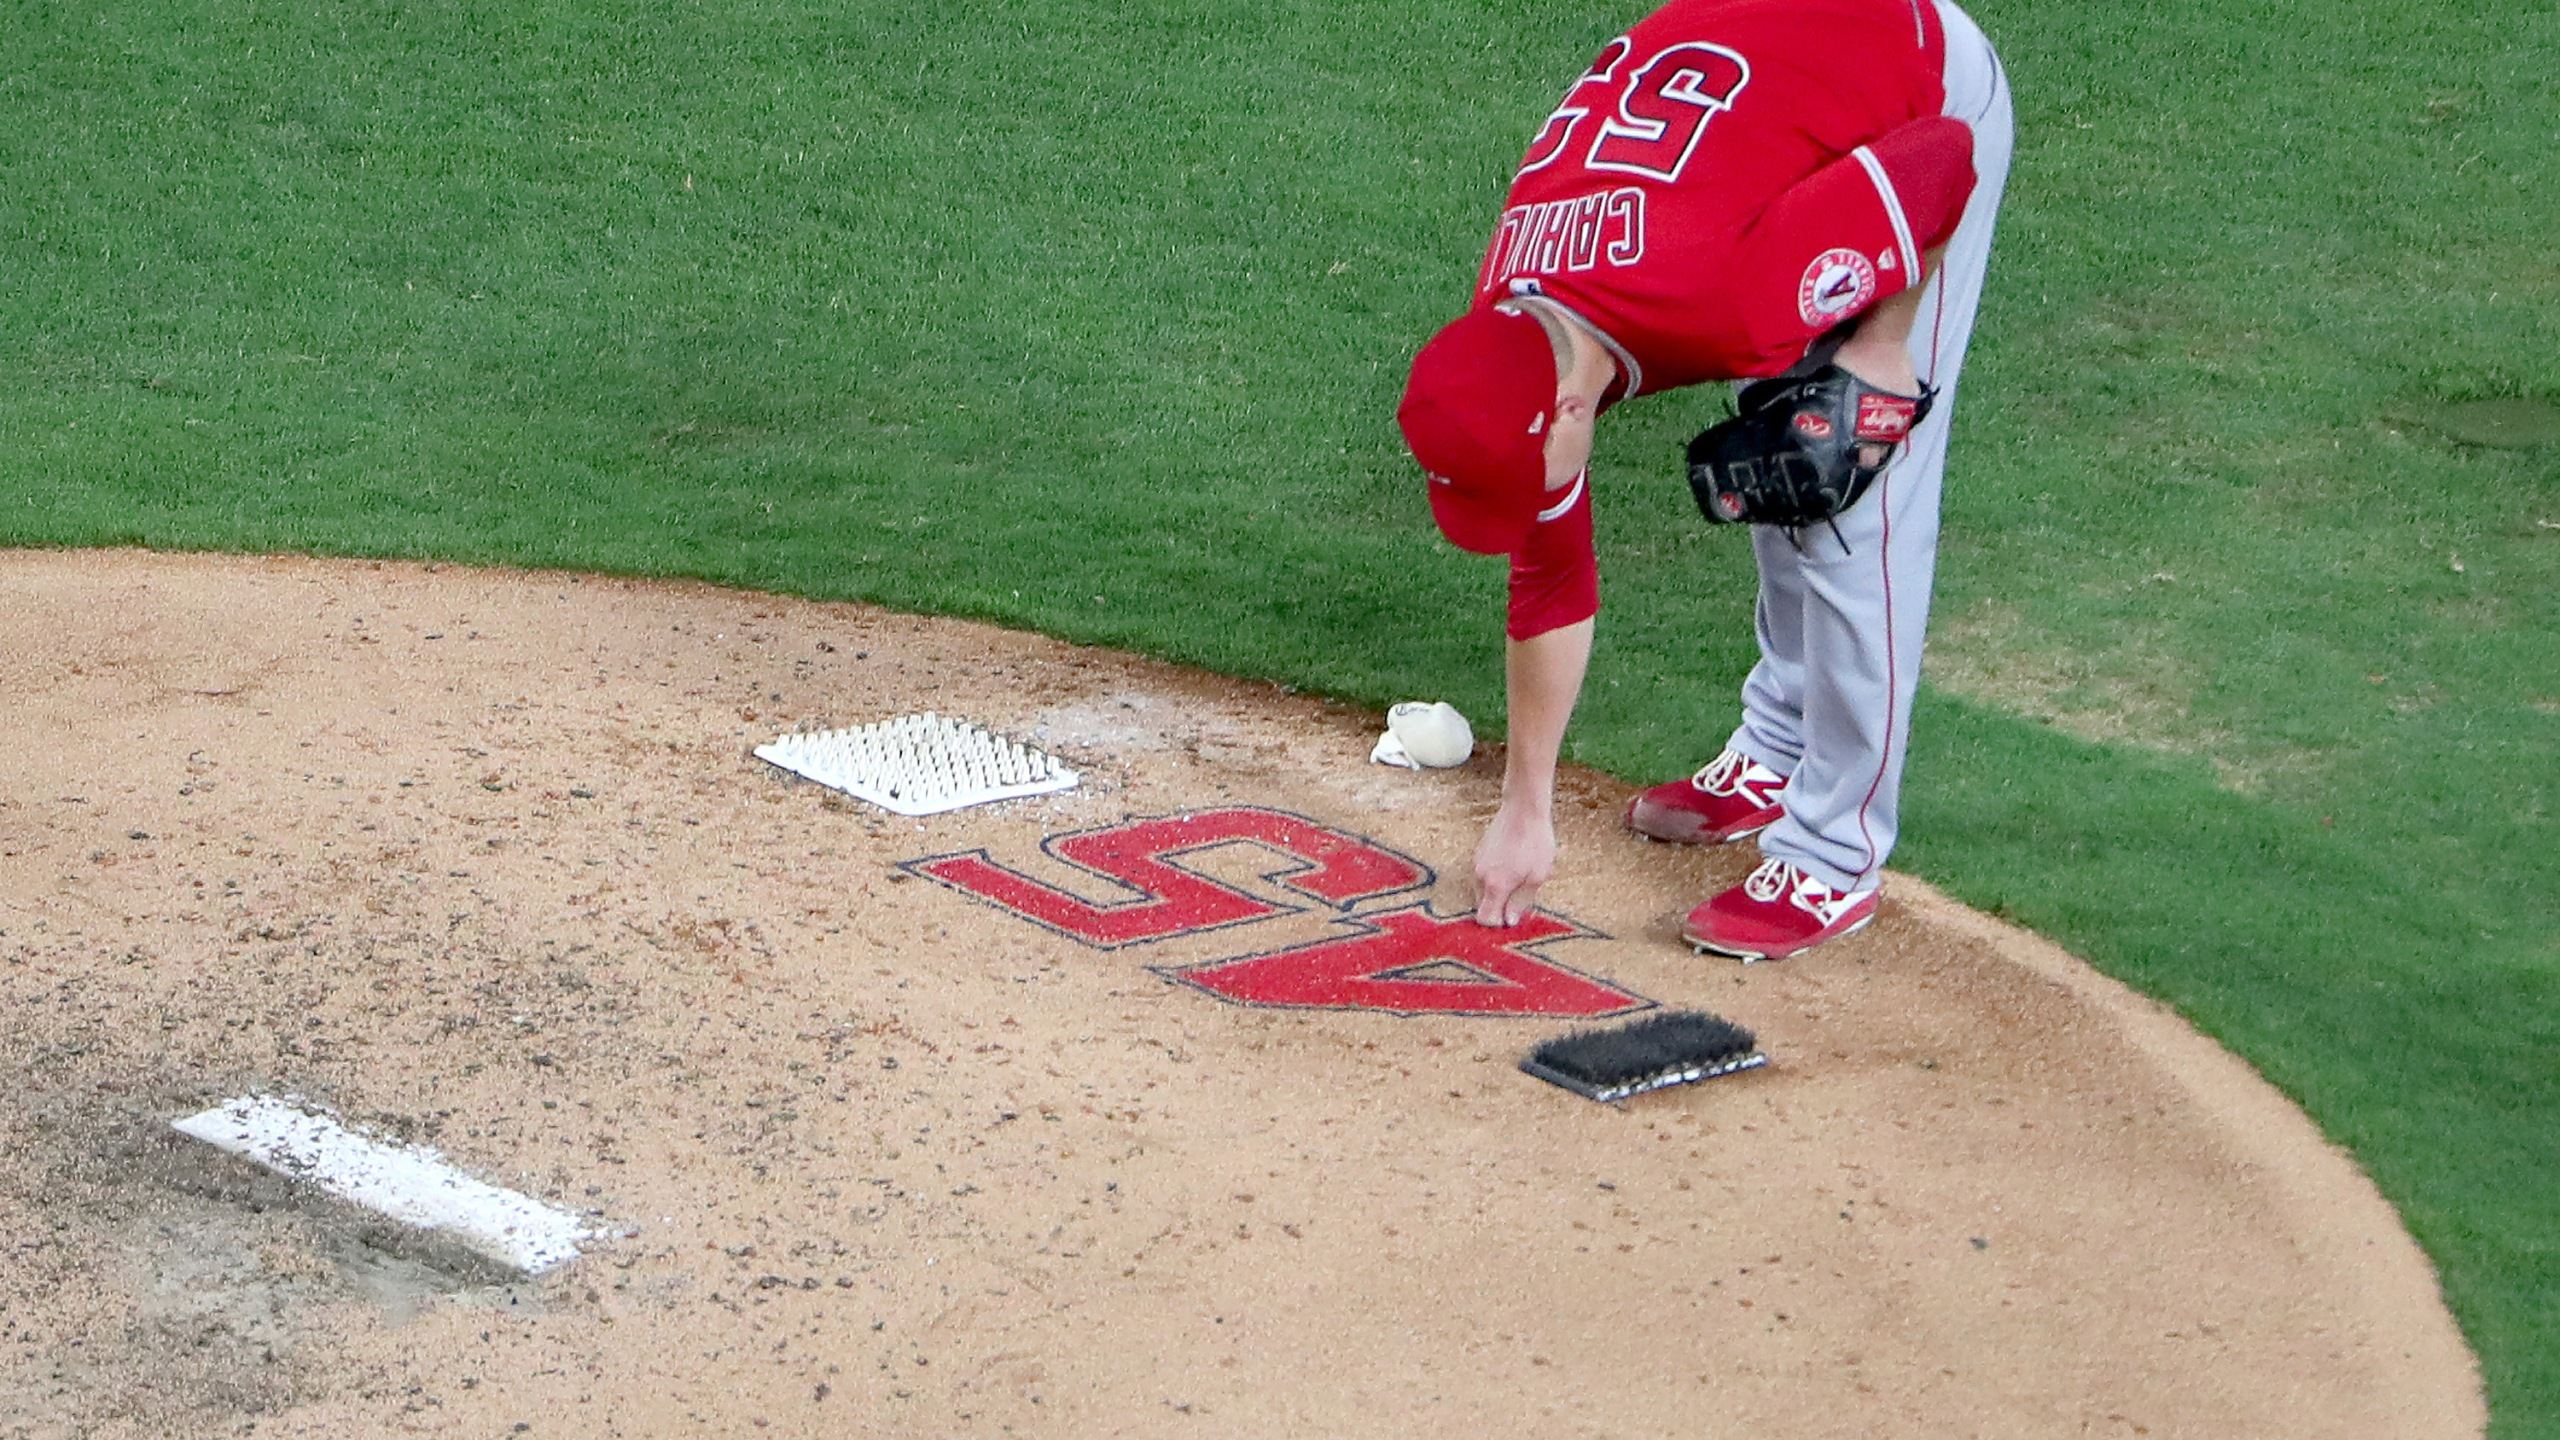 Trevor Cahill of the Los Angeles Angels takes the mound against the Texas Rangers in Arlington, Texas, on July 2, 2019. (Credit: Tom Pennington / Getty Images)